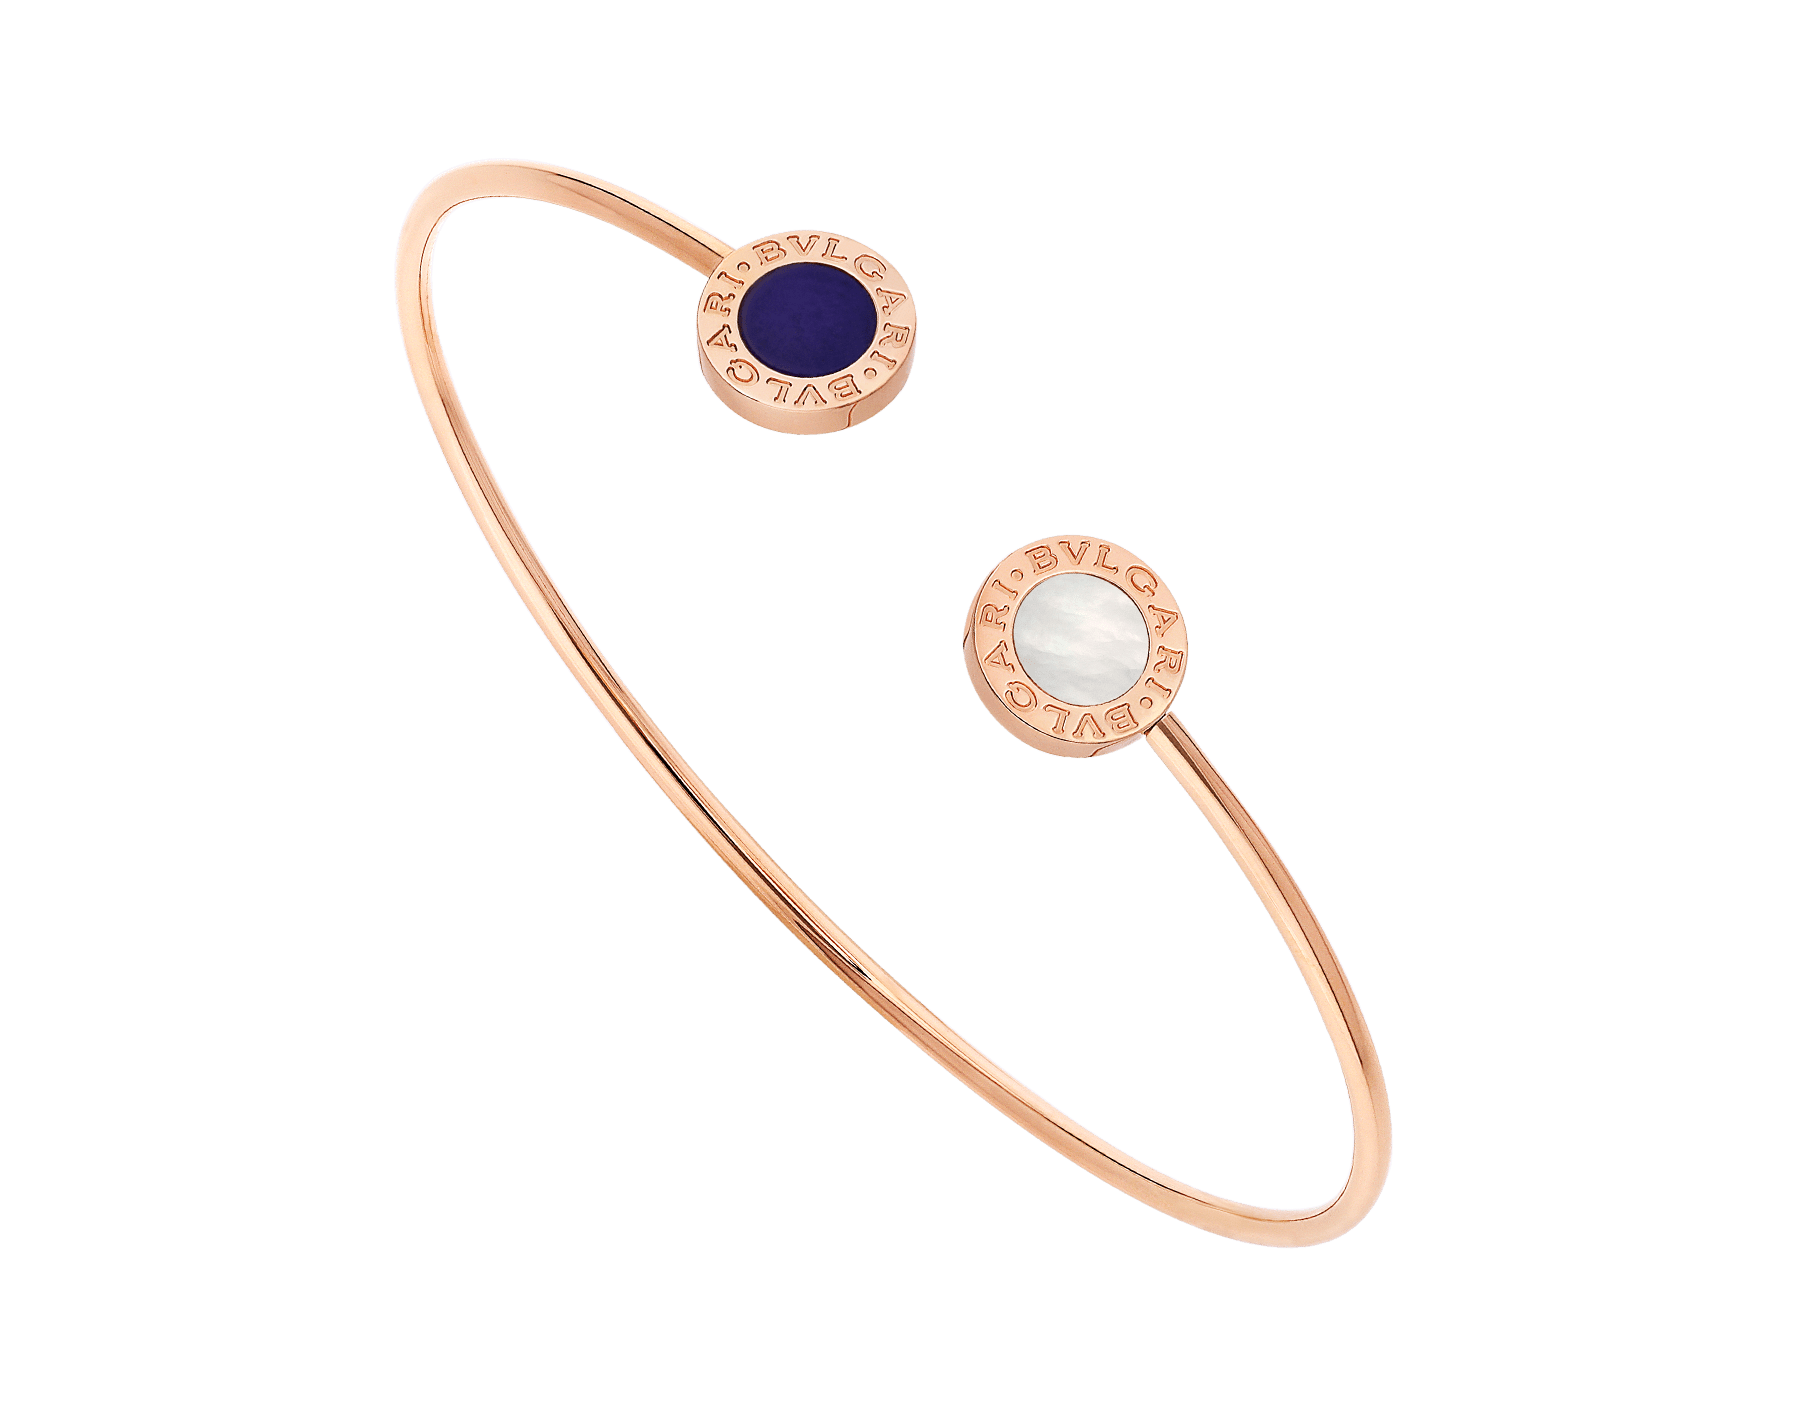 BVLGARI BVLGARI 18 kt rose gold bracelet set with mother-of-pearl and sugilite elements BR858694 image 1